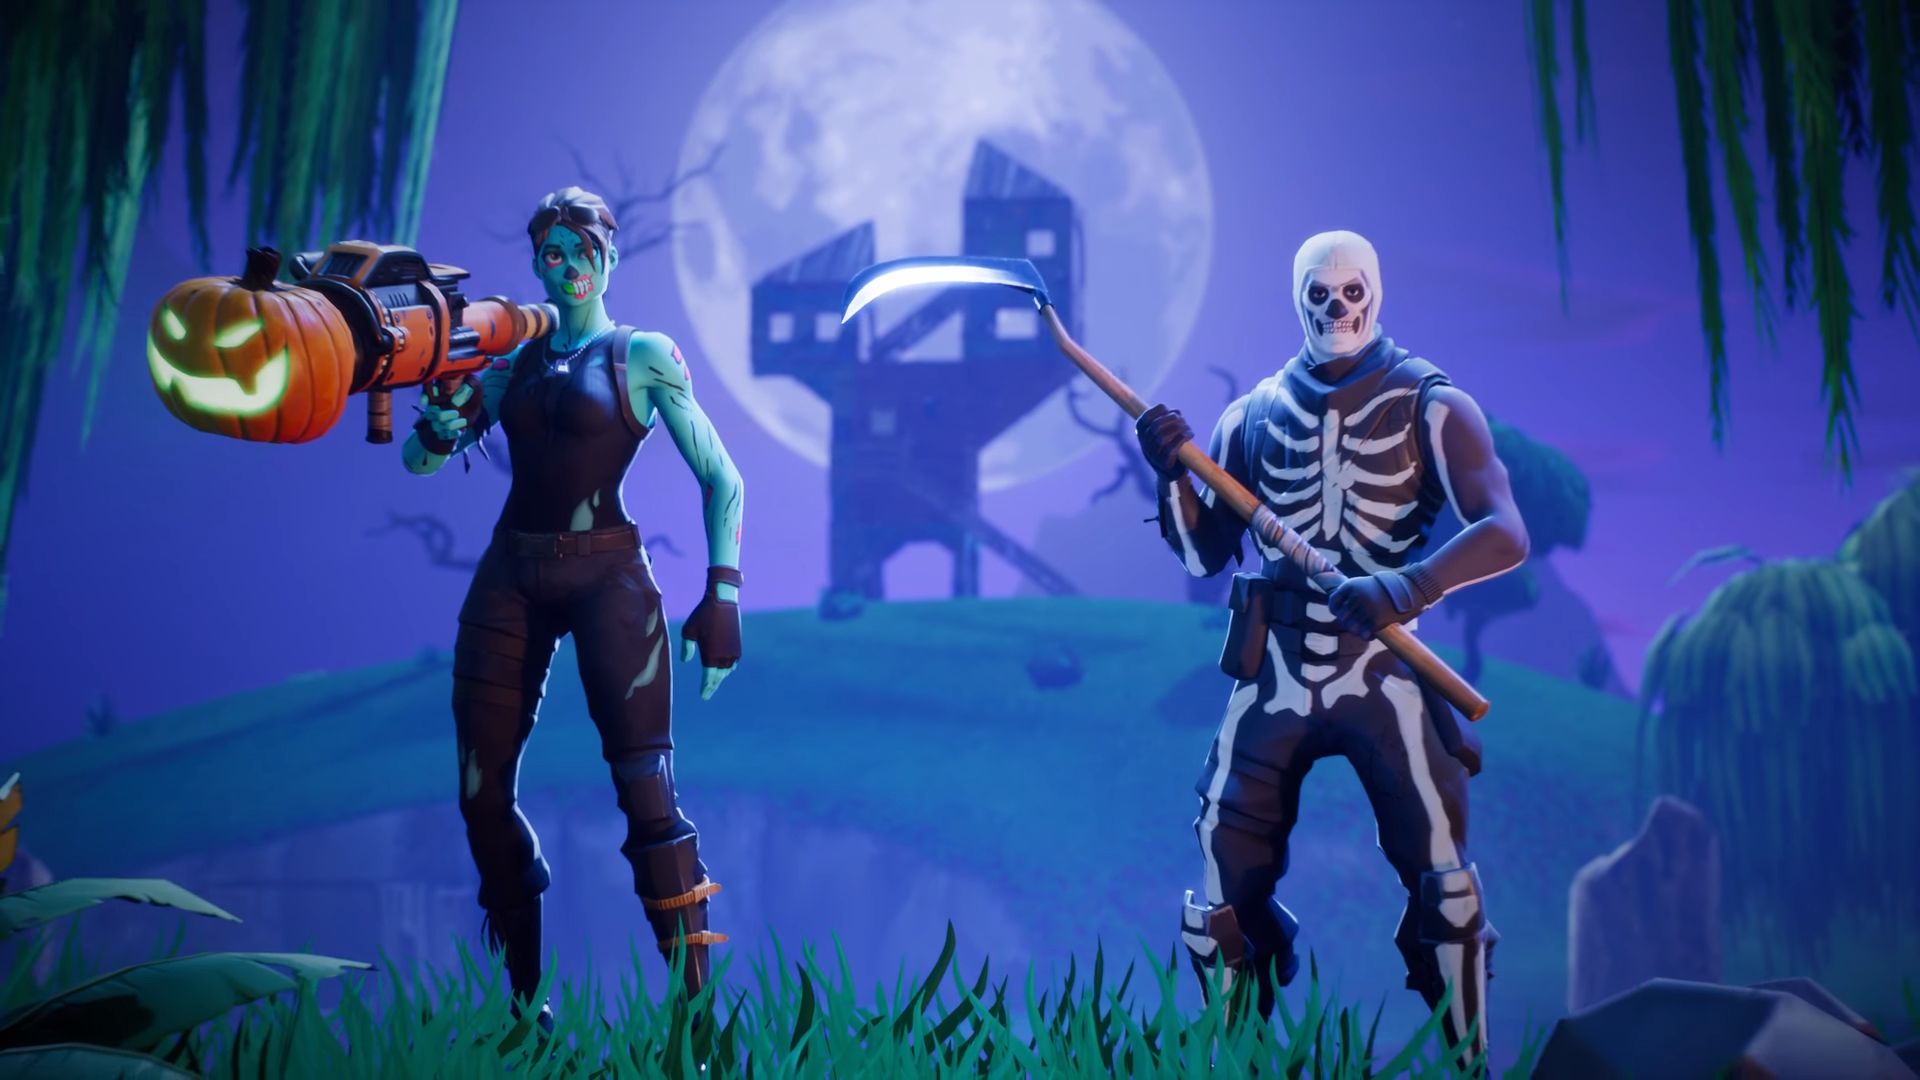 206 Fortnite Hd Wallpapers Background Images Wallpaper Abyss